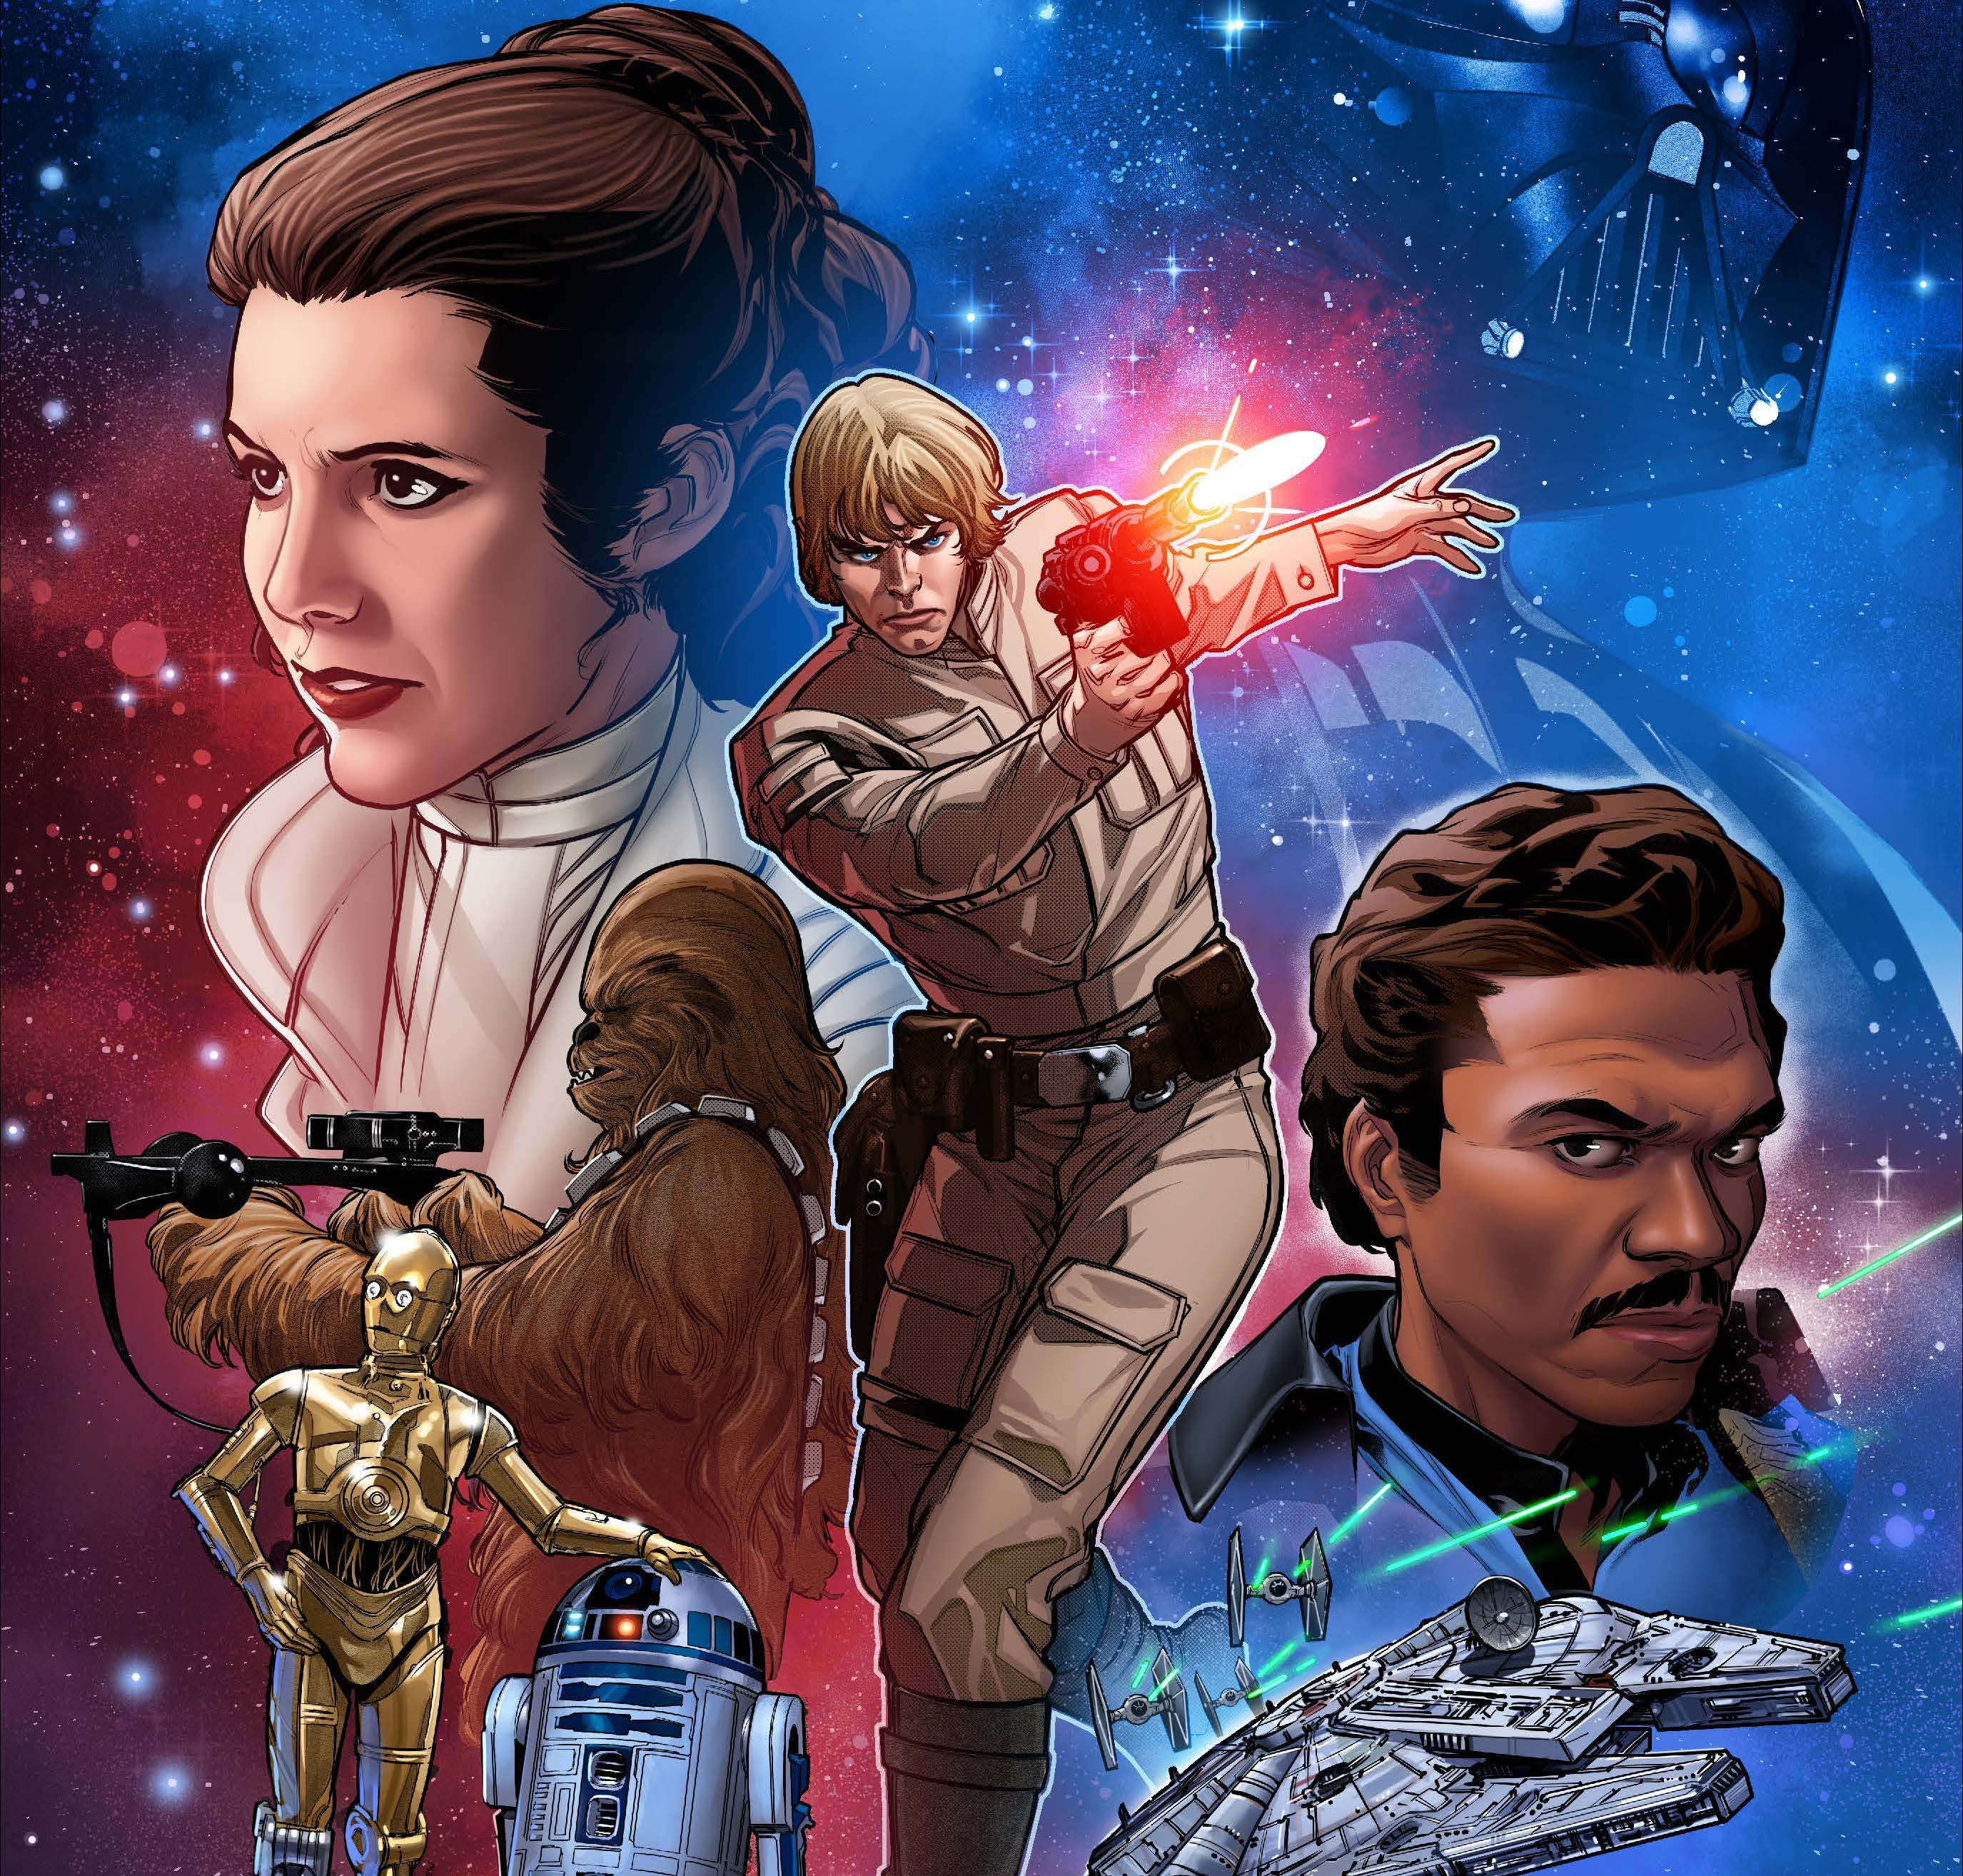 New ongoing Star Wars series begins in January 2020!